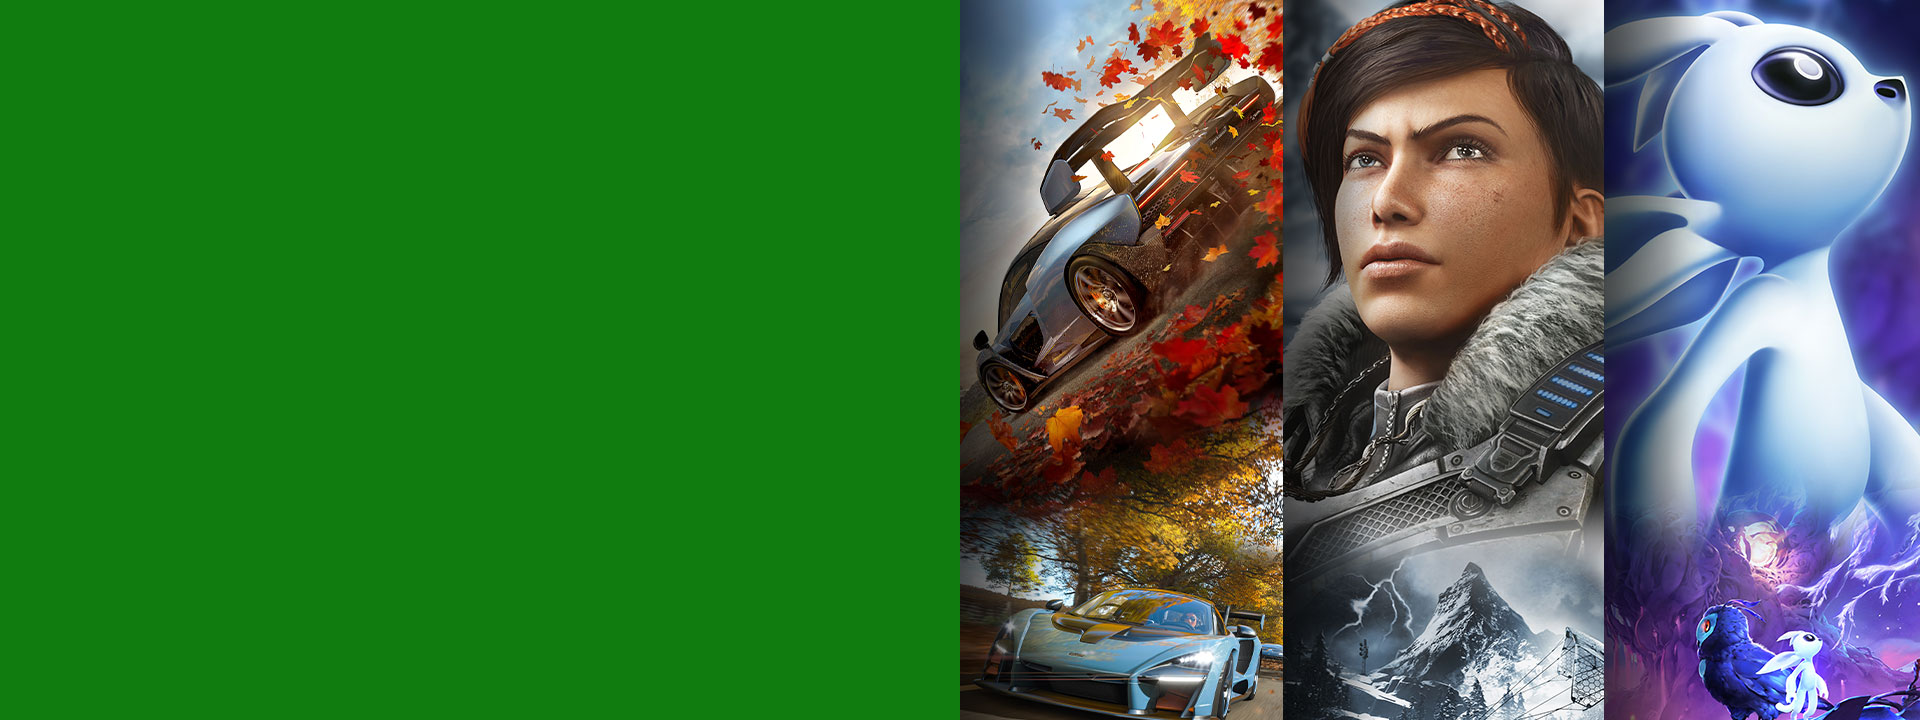 Game art from multiple games available with Xbox Game Pass including Forza Horizon 4, Gears 5, and Ori and the Will of the Wisps.